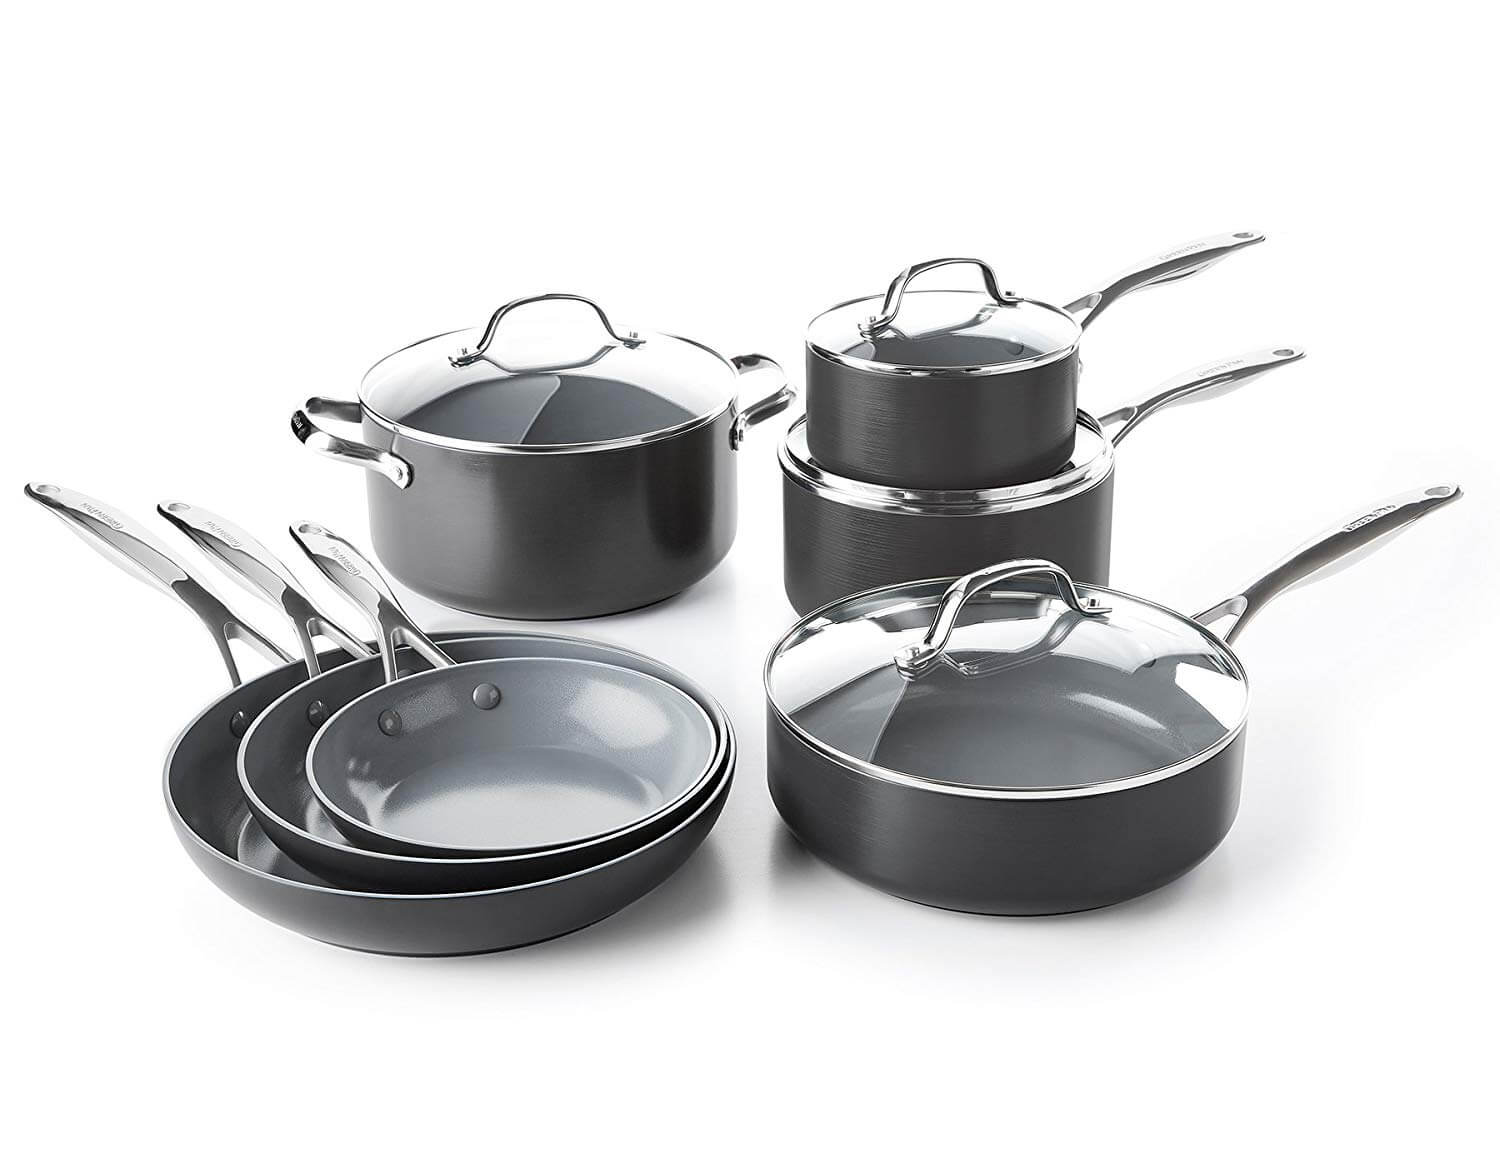 GreenPan Valencia Pro Gray Ceramic Cookware Set